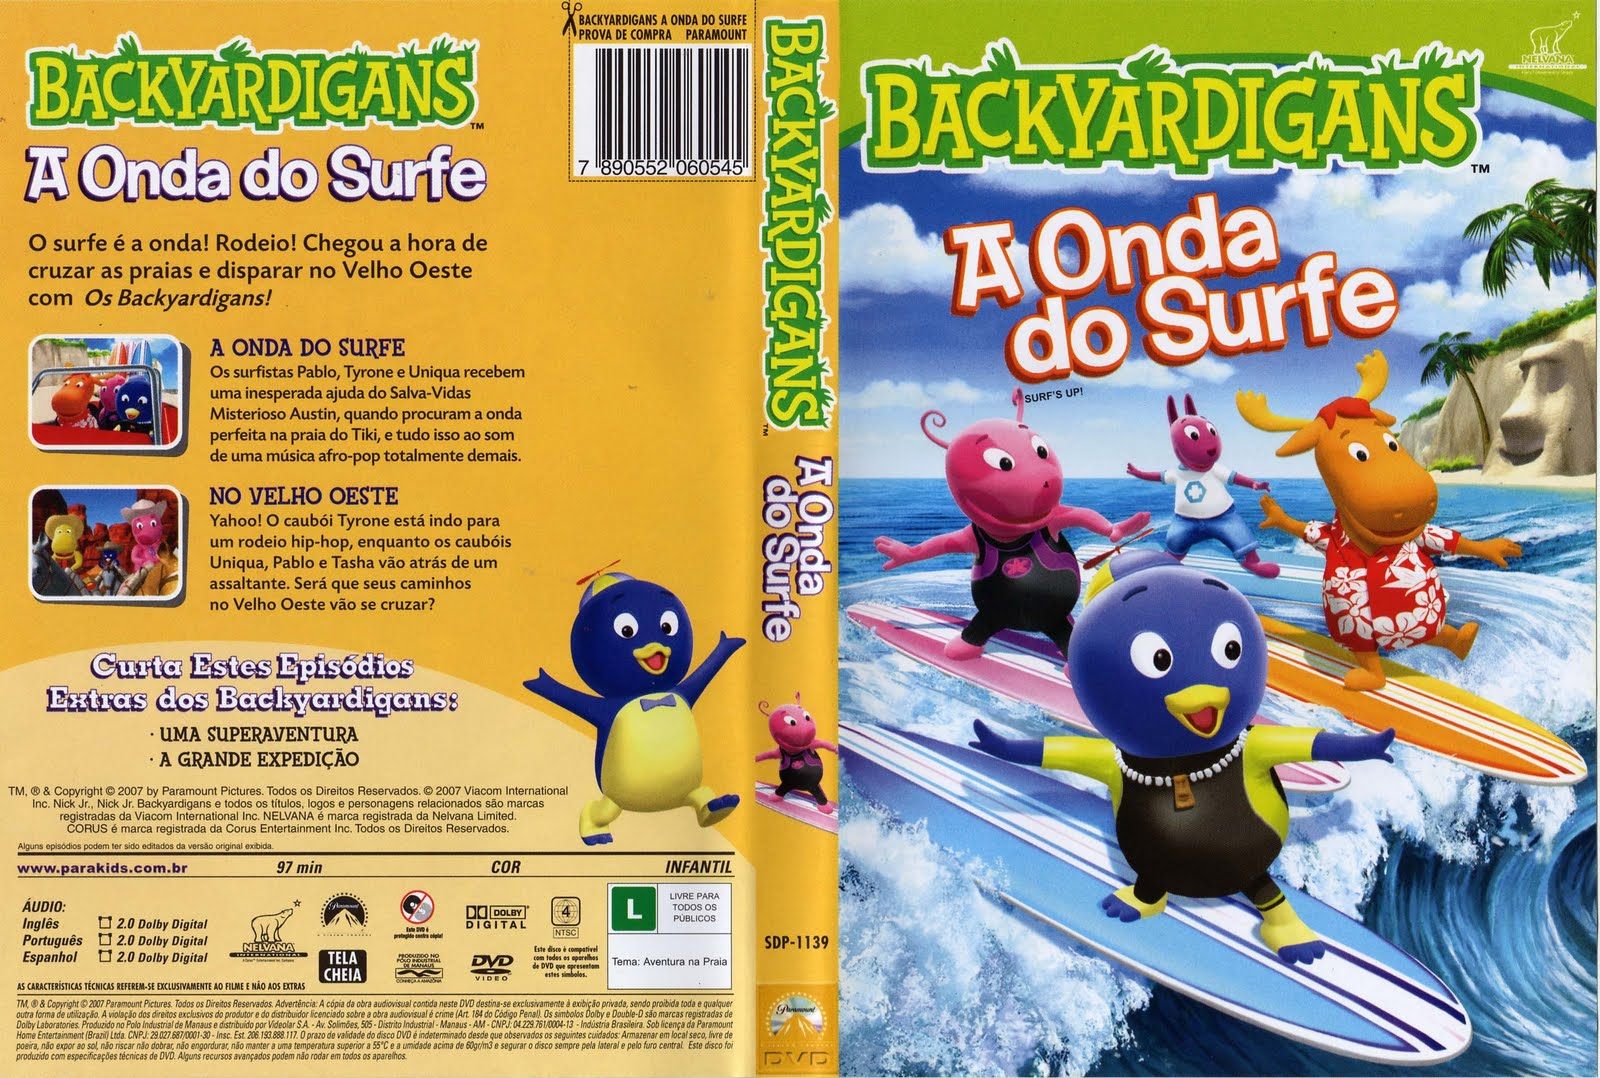 Backyardigans A Onda do Surf PT-BR Backyardigans-aondadosurfe